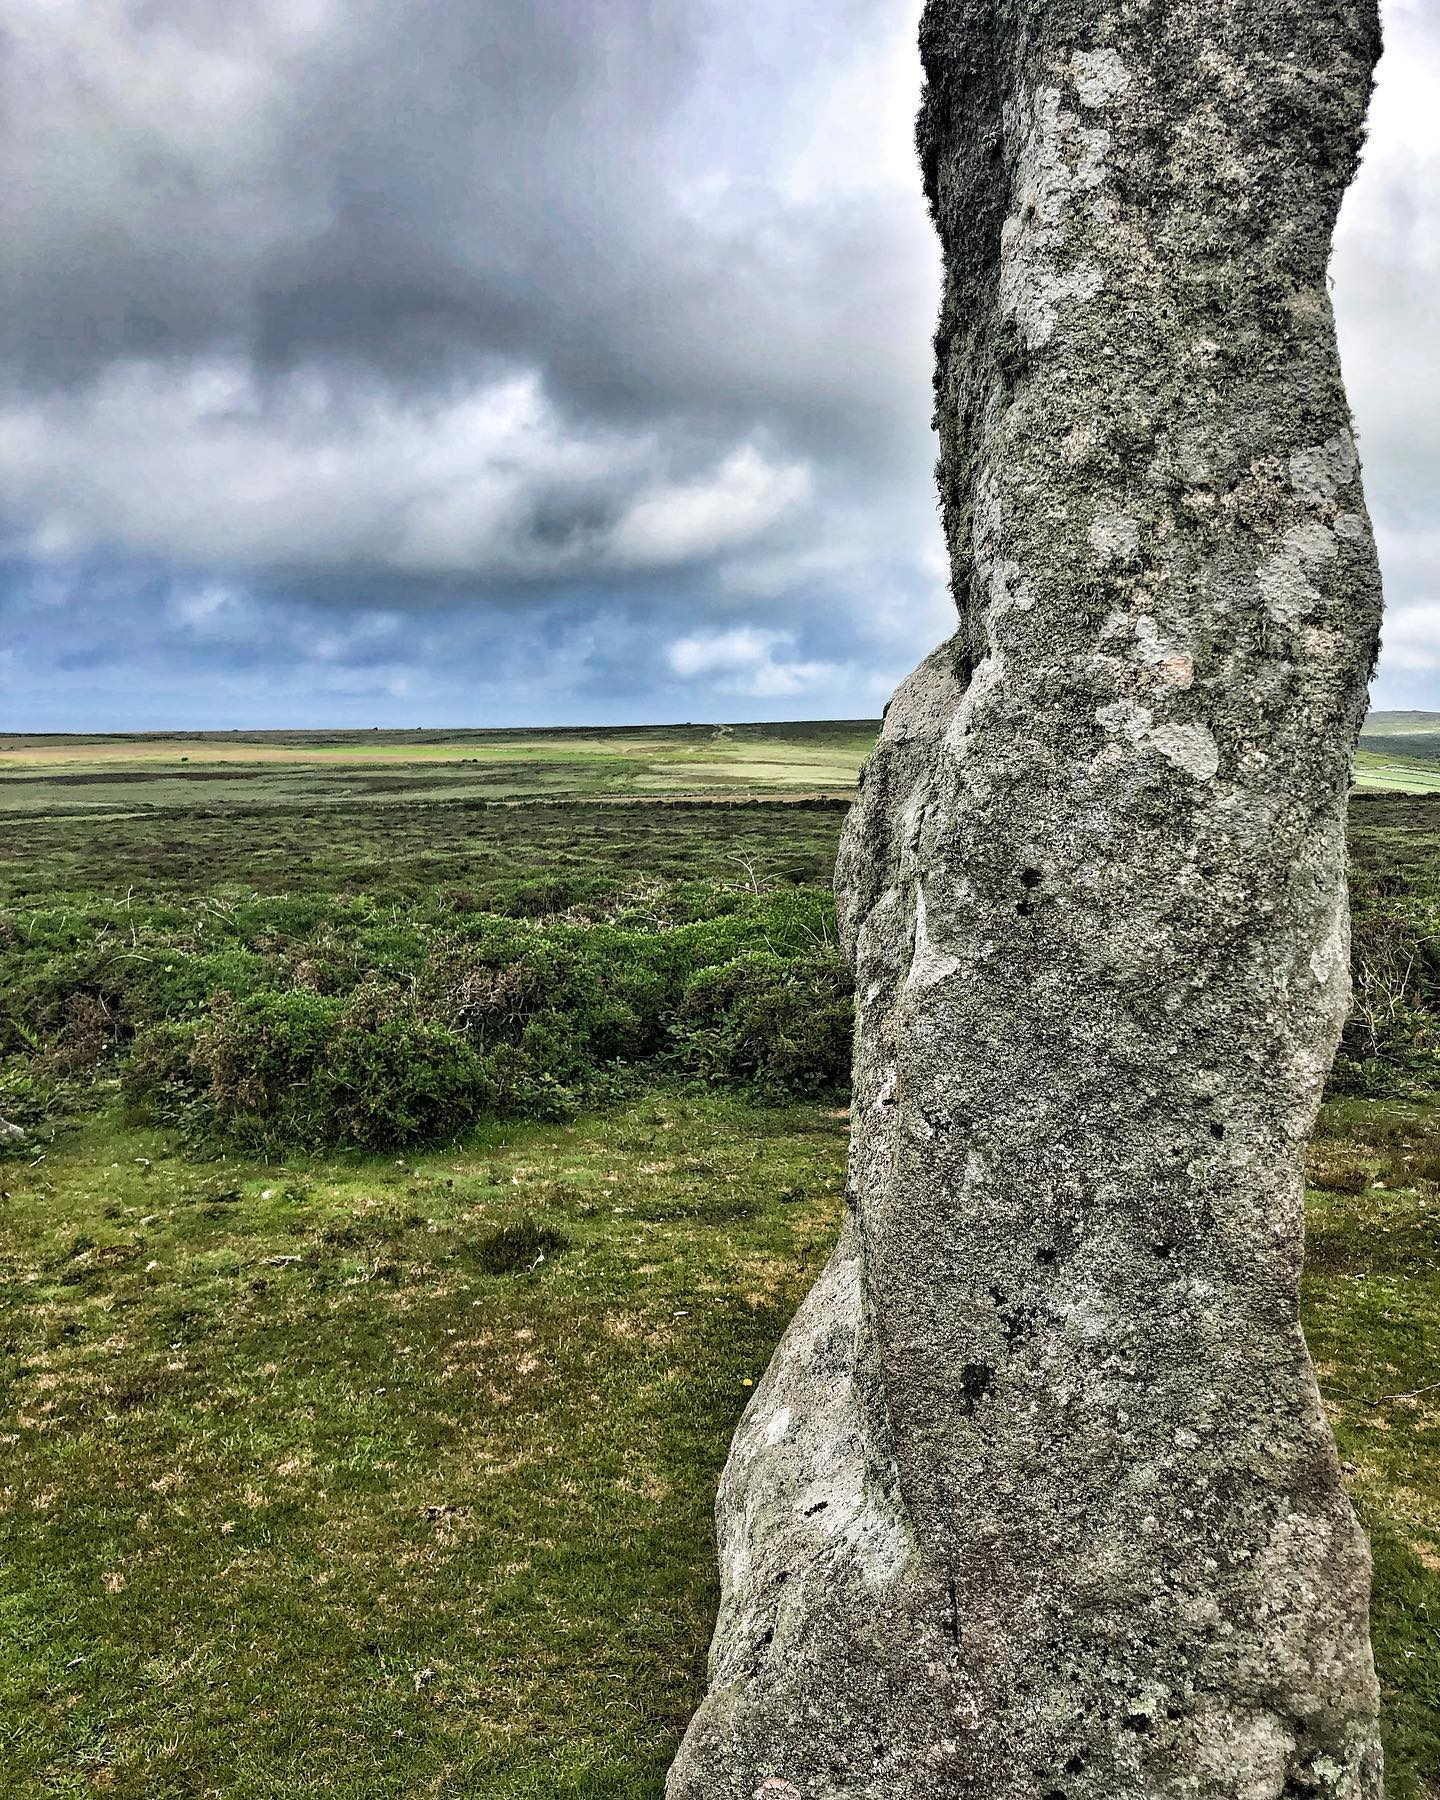 boswens menhir and cairn. at 210m above sea level and 2.38 high this menhir is intervisible with chun quoit and the tregaseal holed stone row and stone circle (just). it was first recorded by dr borlase in 1754 in the midst of a small stone cairn 7.5m in diameter and covering a third of its height...#menhir, #menhirs #boswensmenhir, #carne, #cairn, #chunquoit, #holedstones, #holedstonerow, #westpenwith, #cornwall, #ancientstones, #megalith, #orthostat, #longstone..montagecity.com